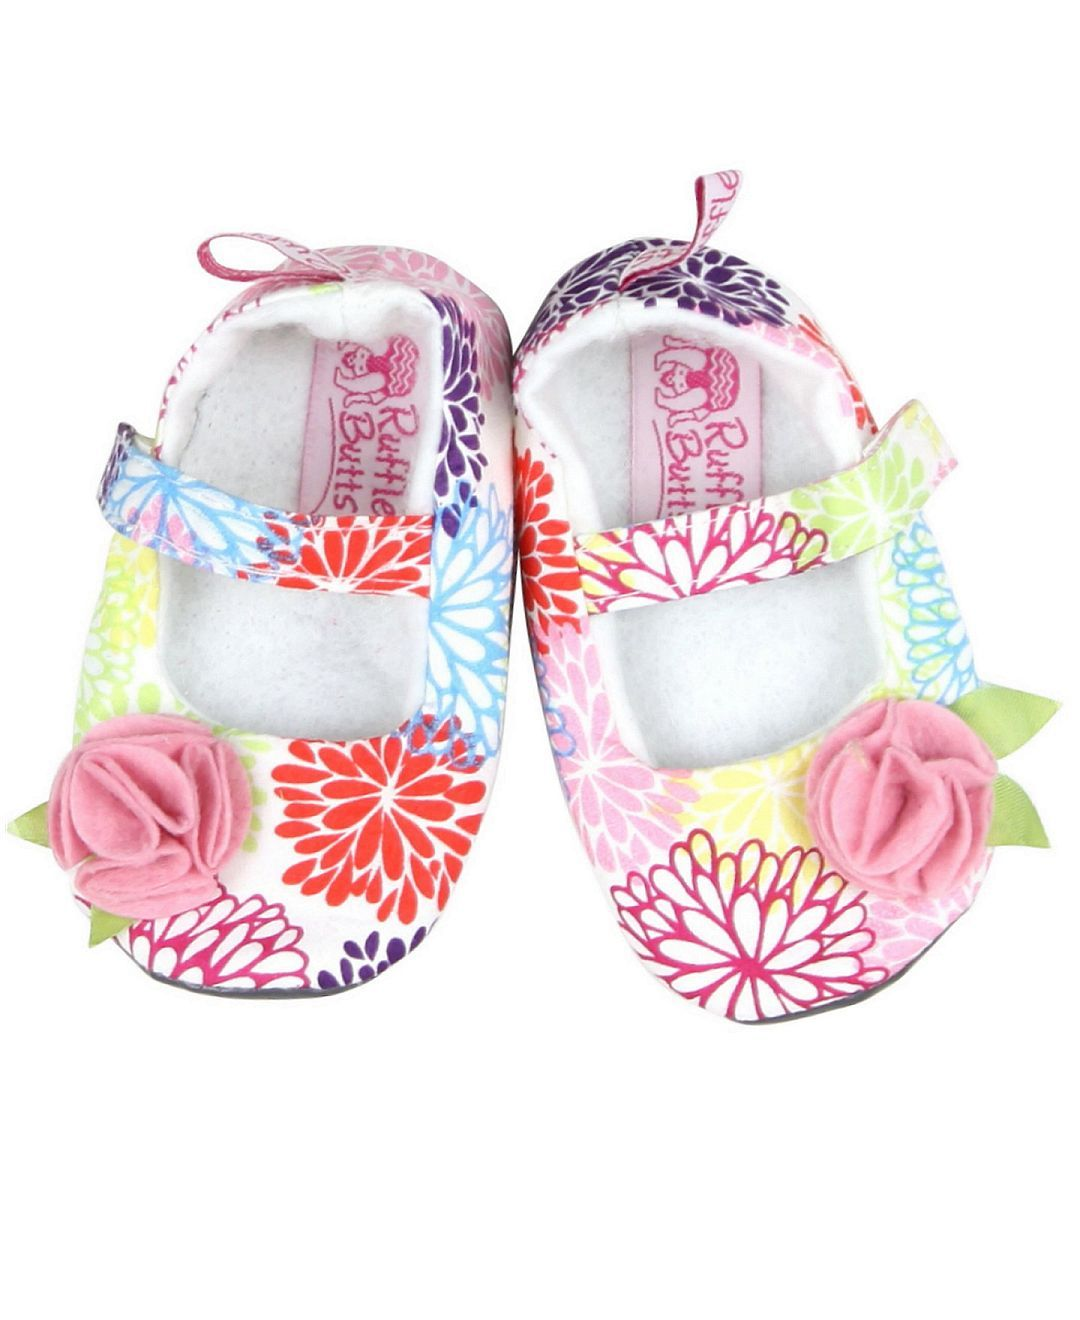 Super soft and sweet baby shoes are a great addition to your little one's RuffleButts Accessories Collection. Designed to mix-n-match with a multitude of items in the RuffleButts Apparel Collection, this the perfect addition to her ruffled ensemble.